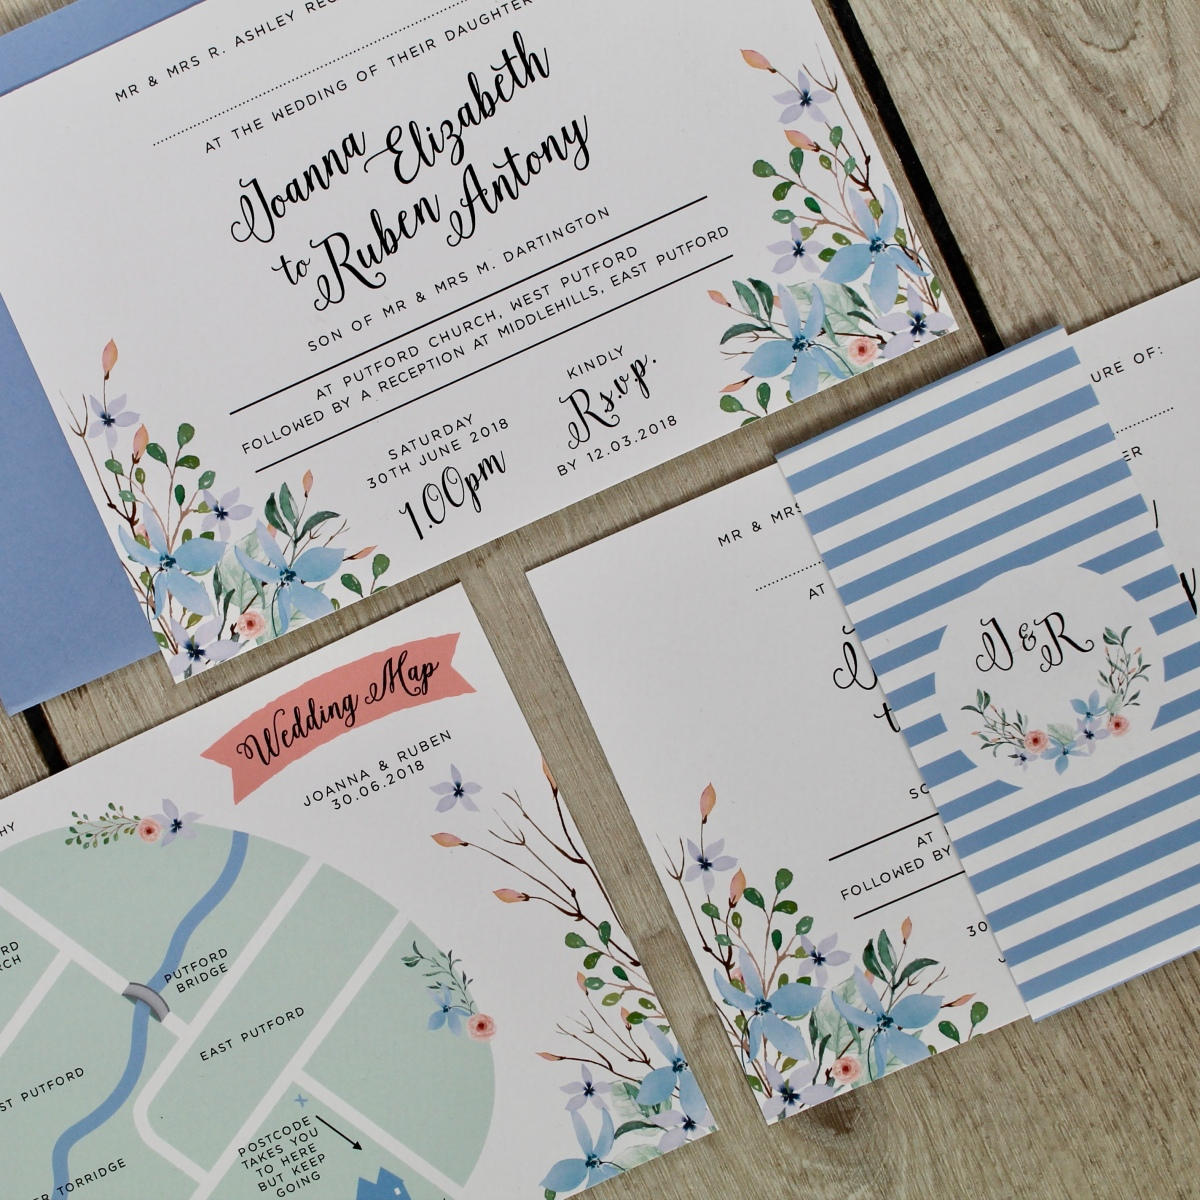 wedding invitation, wedding invitations, wedding , invite, invites, wedding map, forest, enchanted, blue, violet, wild, overgrown, floral, watercolour, calligraphy, hand lettering, stationery, stationary, cornwall, Laura likes